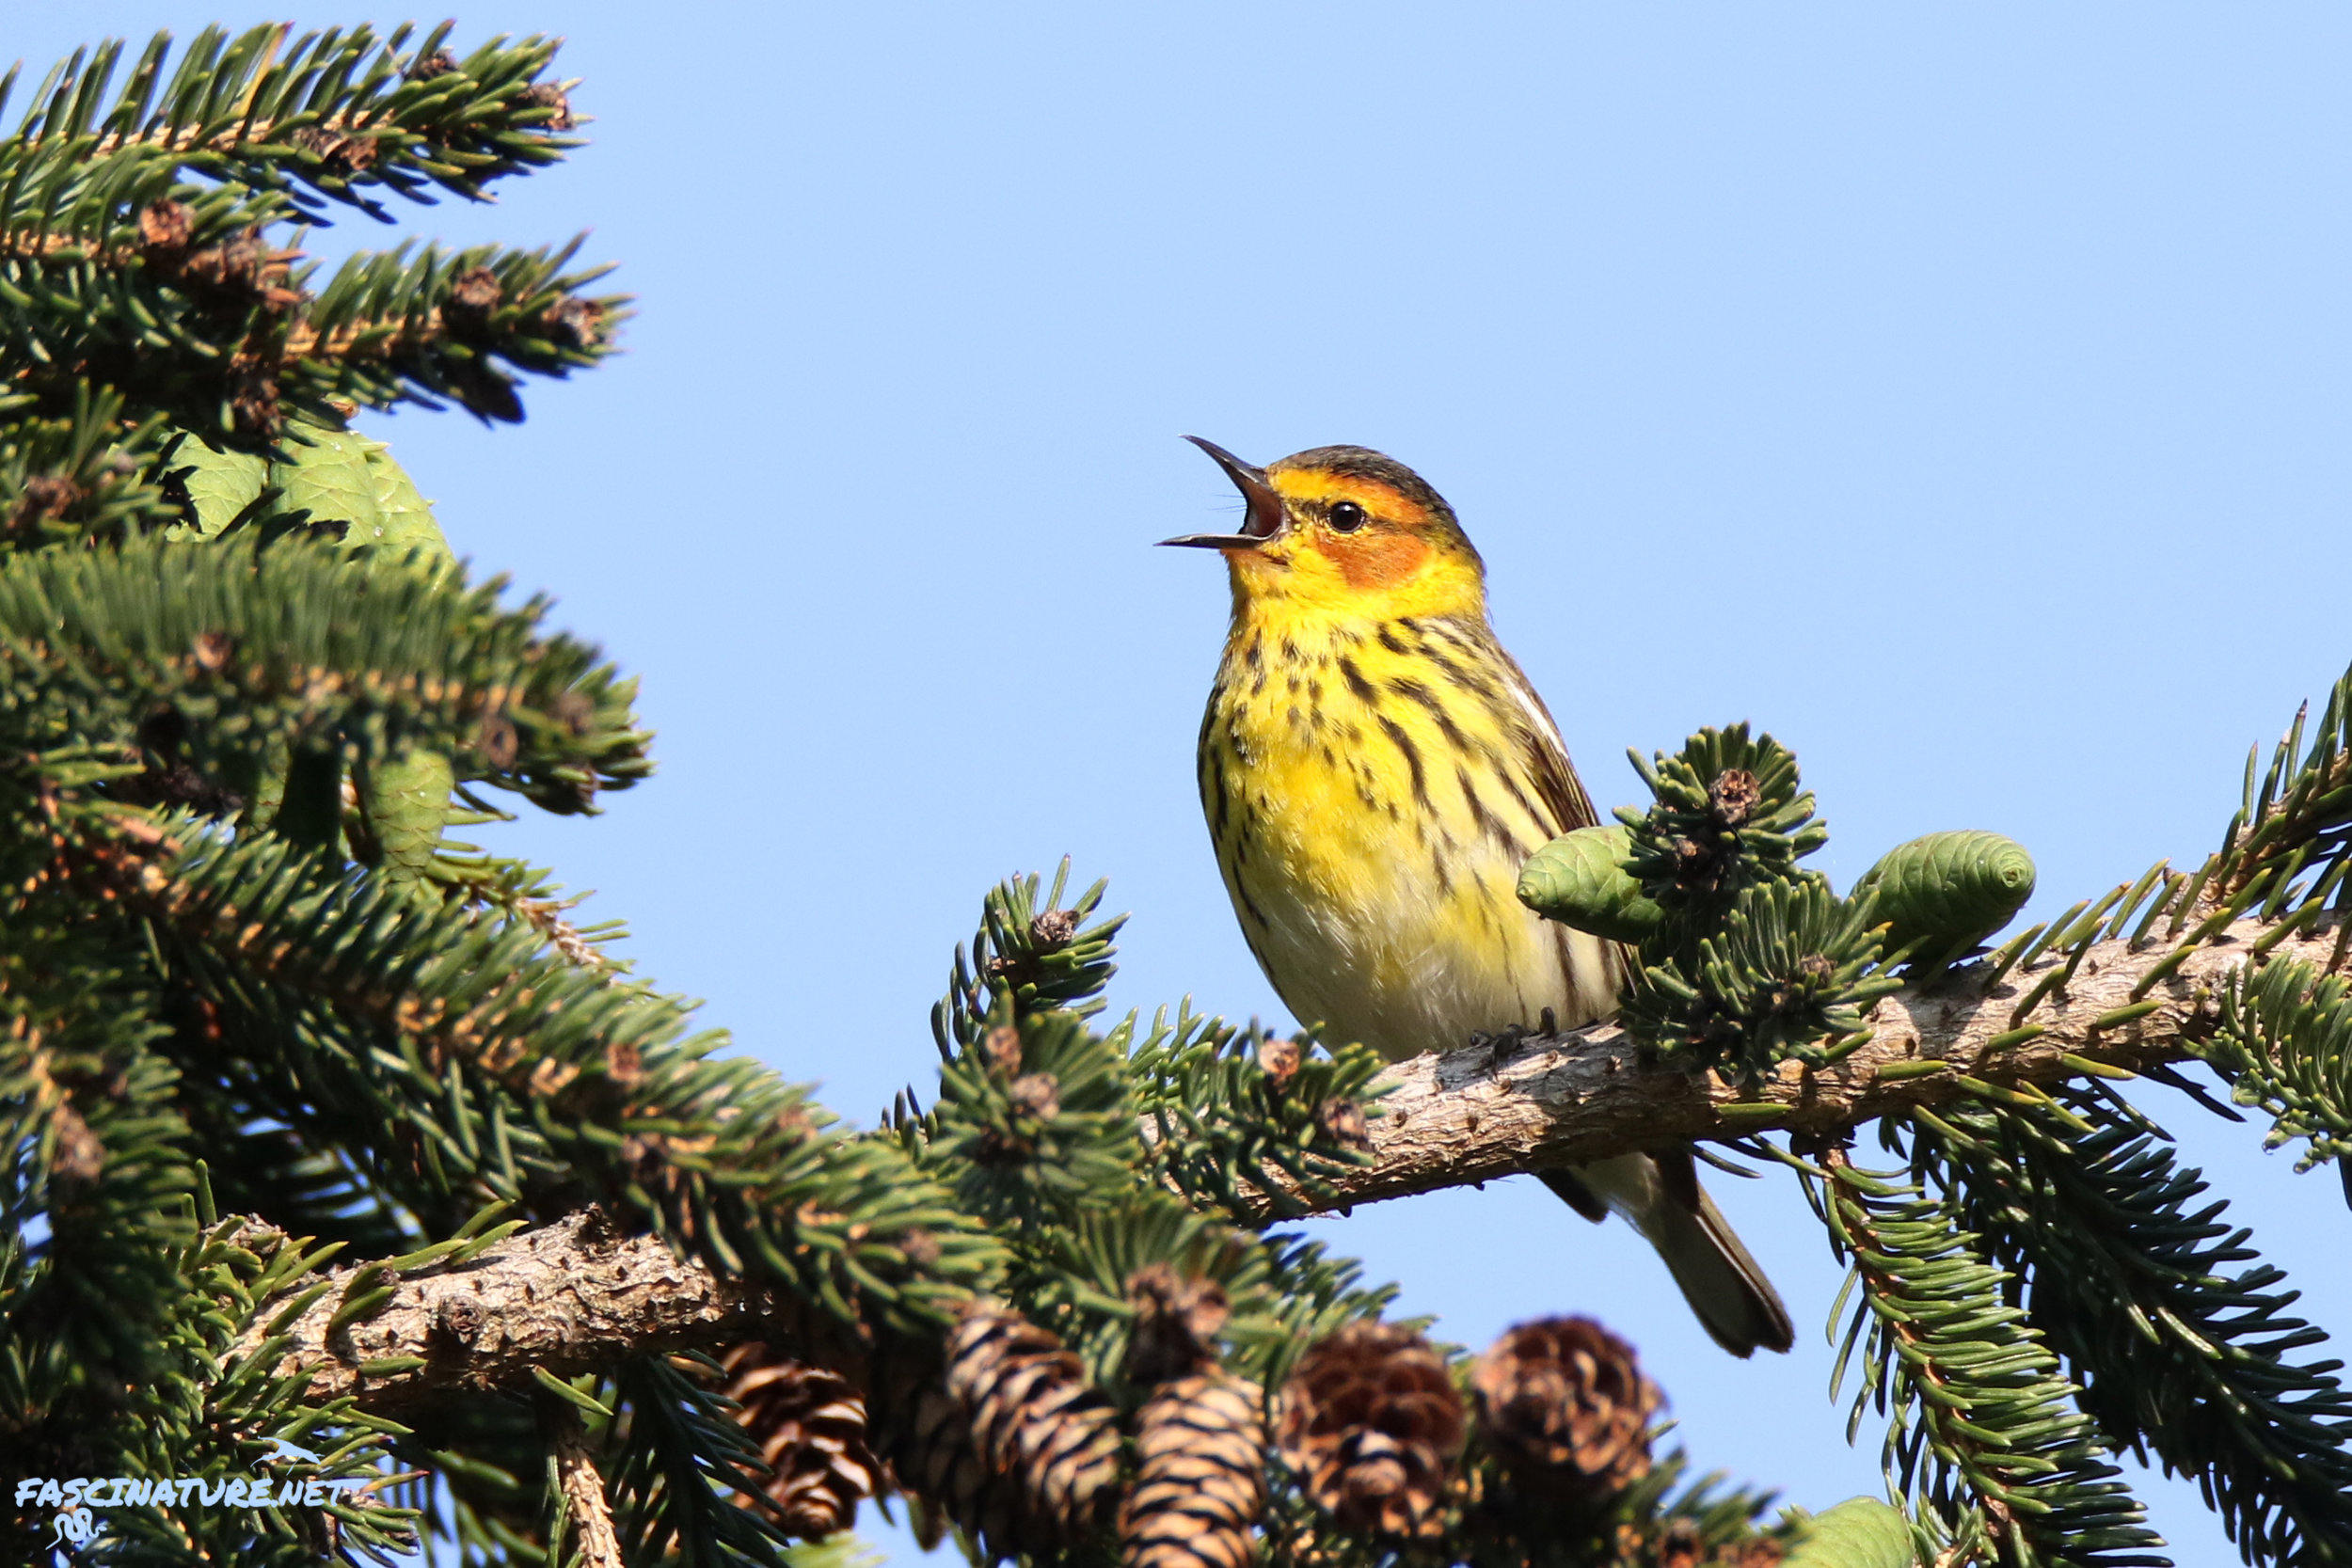 Featured in the Songbirds of the Northeast